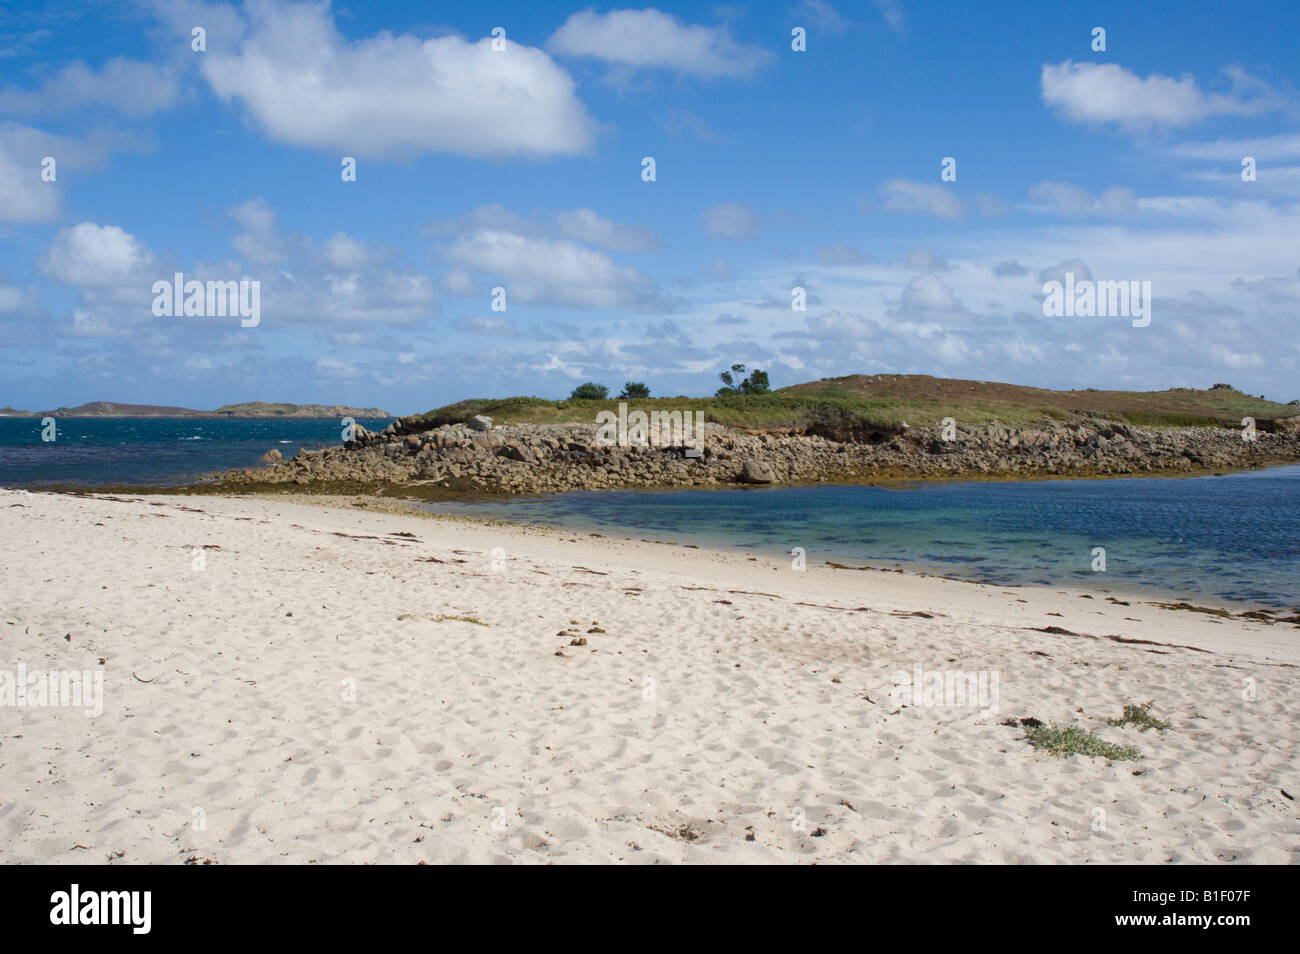 Toll's Island, St. Mary's, Isles of Scilly - Stock Image